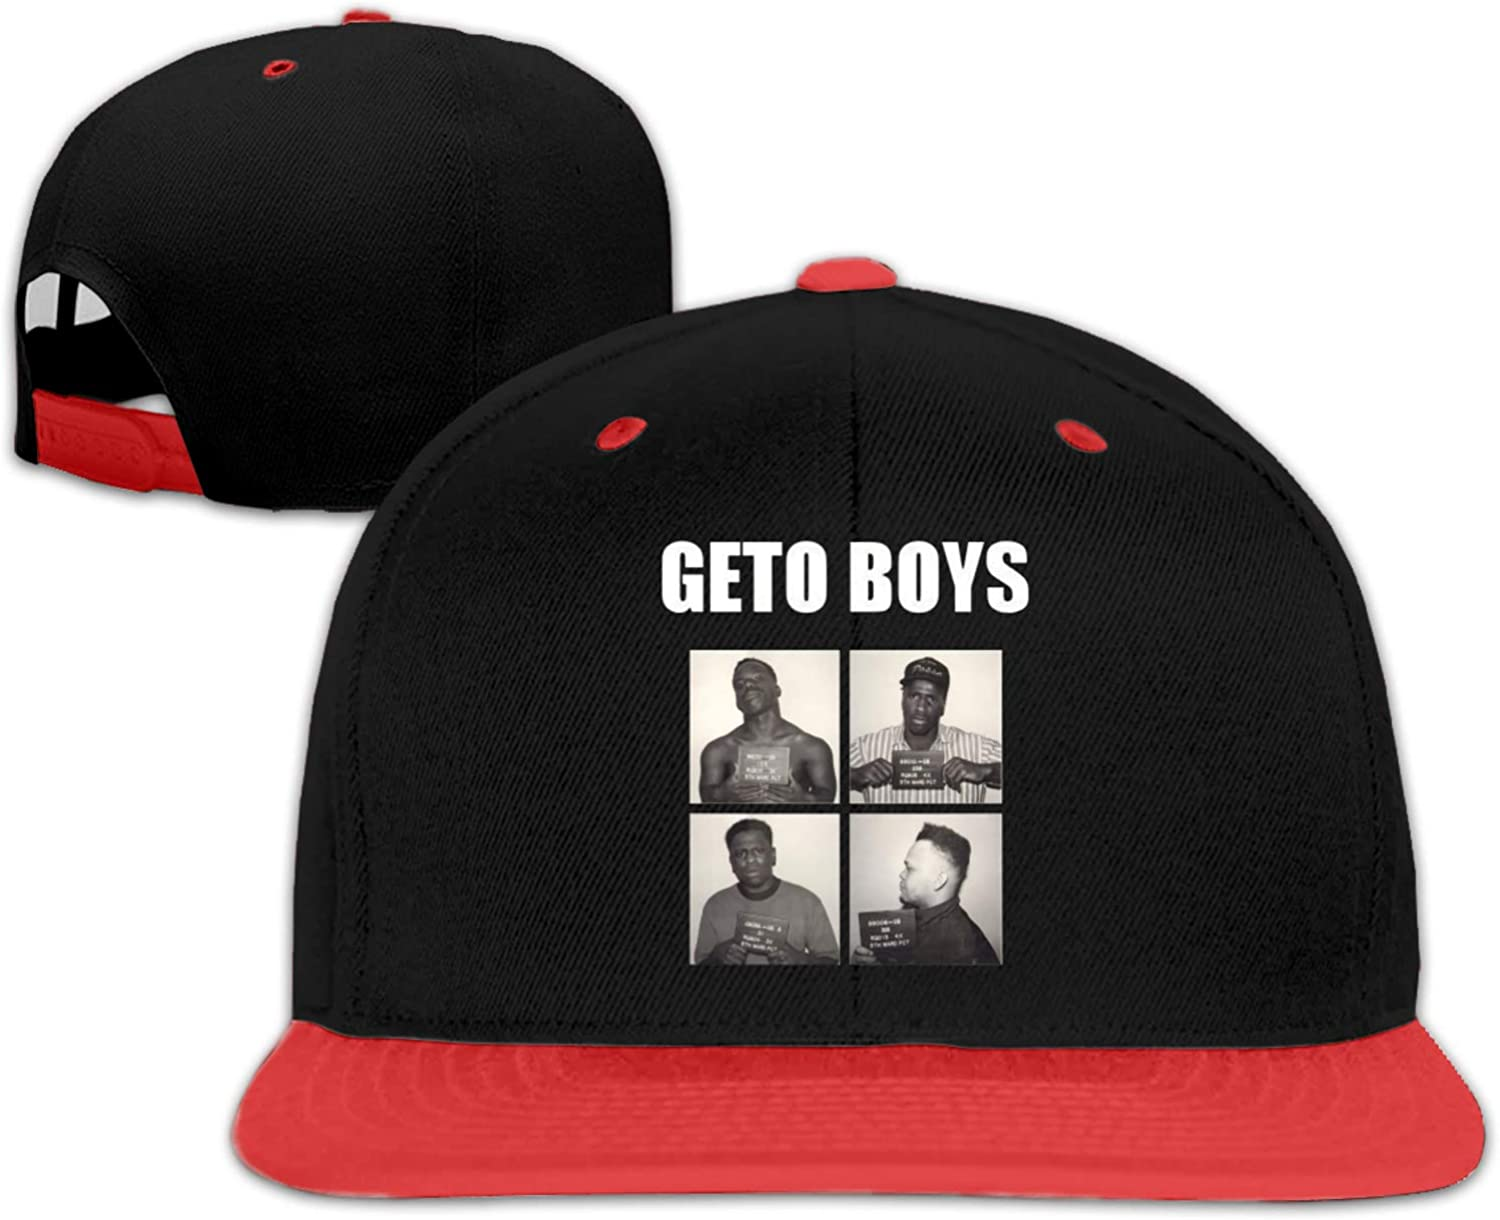 Our shop most popular The Geto Charlotte Mall Boys Fashion Hip Baseball Adjustable Hat Hop Caps